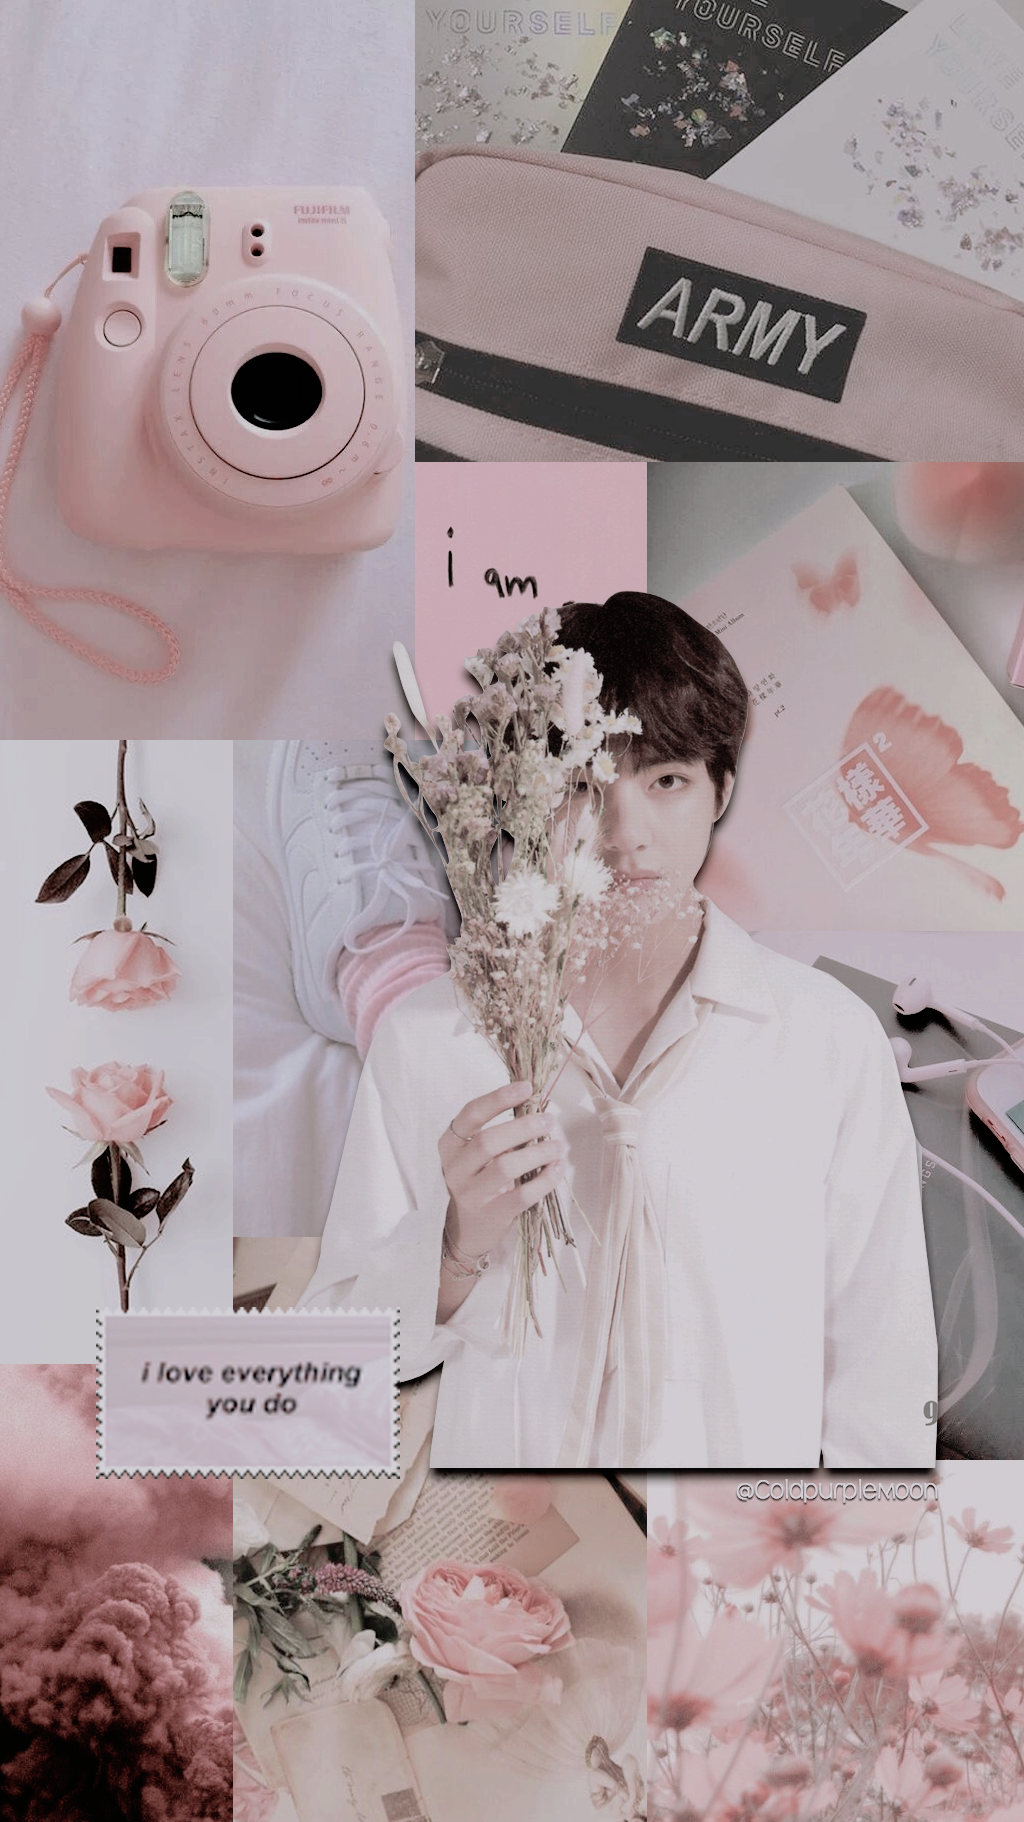 Wallpaper Bts Taehyung Pink Wallpaper Edit Wallpaper Bts Taehyung Edit Aestheti Bts Aesthetic Wallpaper For Phone Kim Taehyung Wallpaper Pink Wallpaper